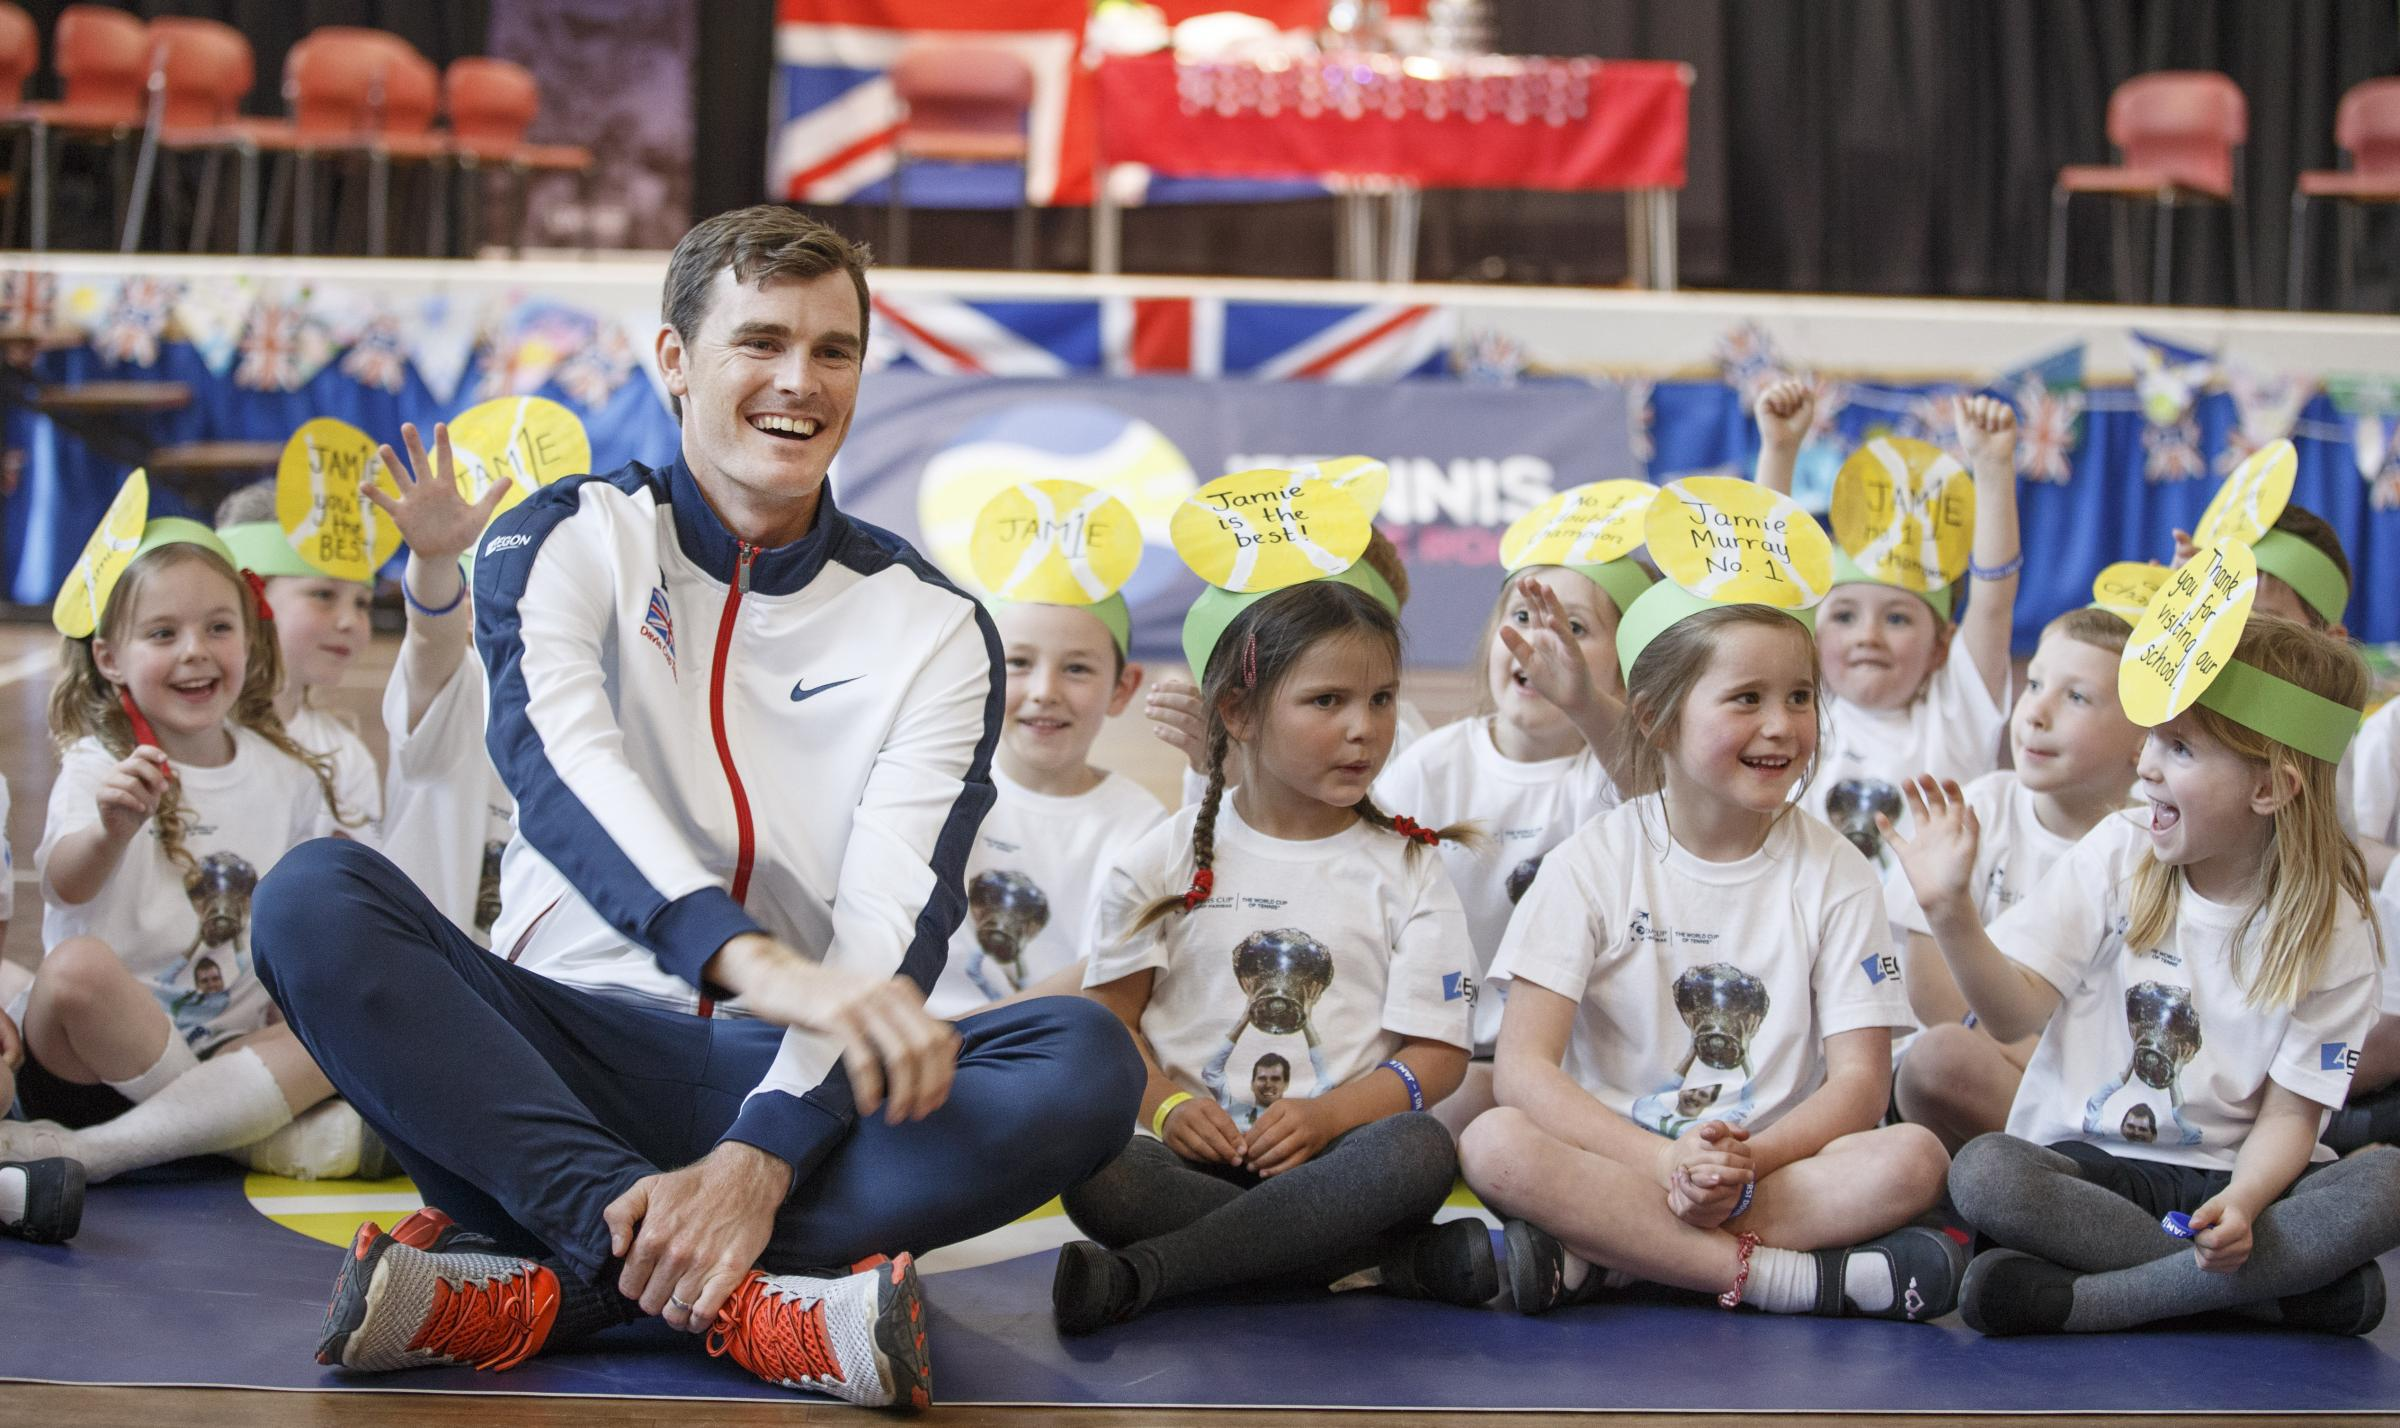 Jamie Murray visits Dunblane Sports Centre with the Davis Cup trophy